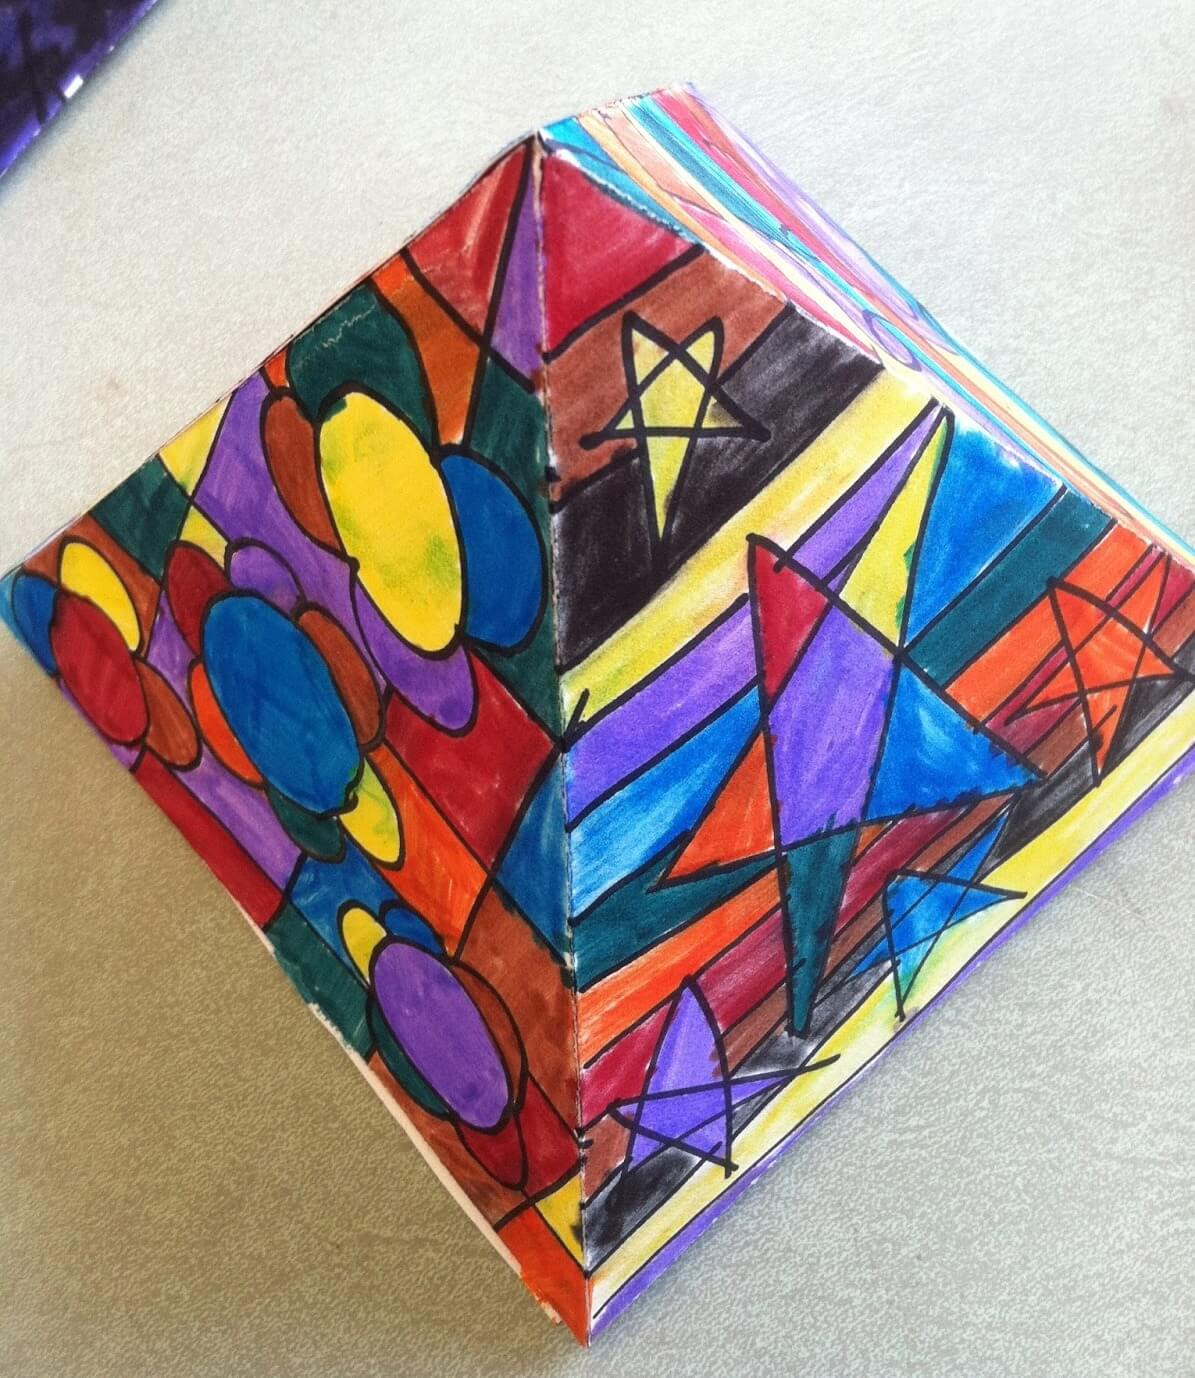 10 Amazingly Colorful Romero Britto Art Projects For Kids